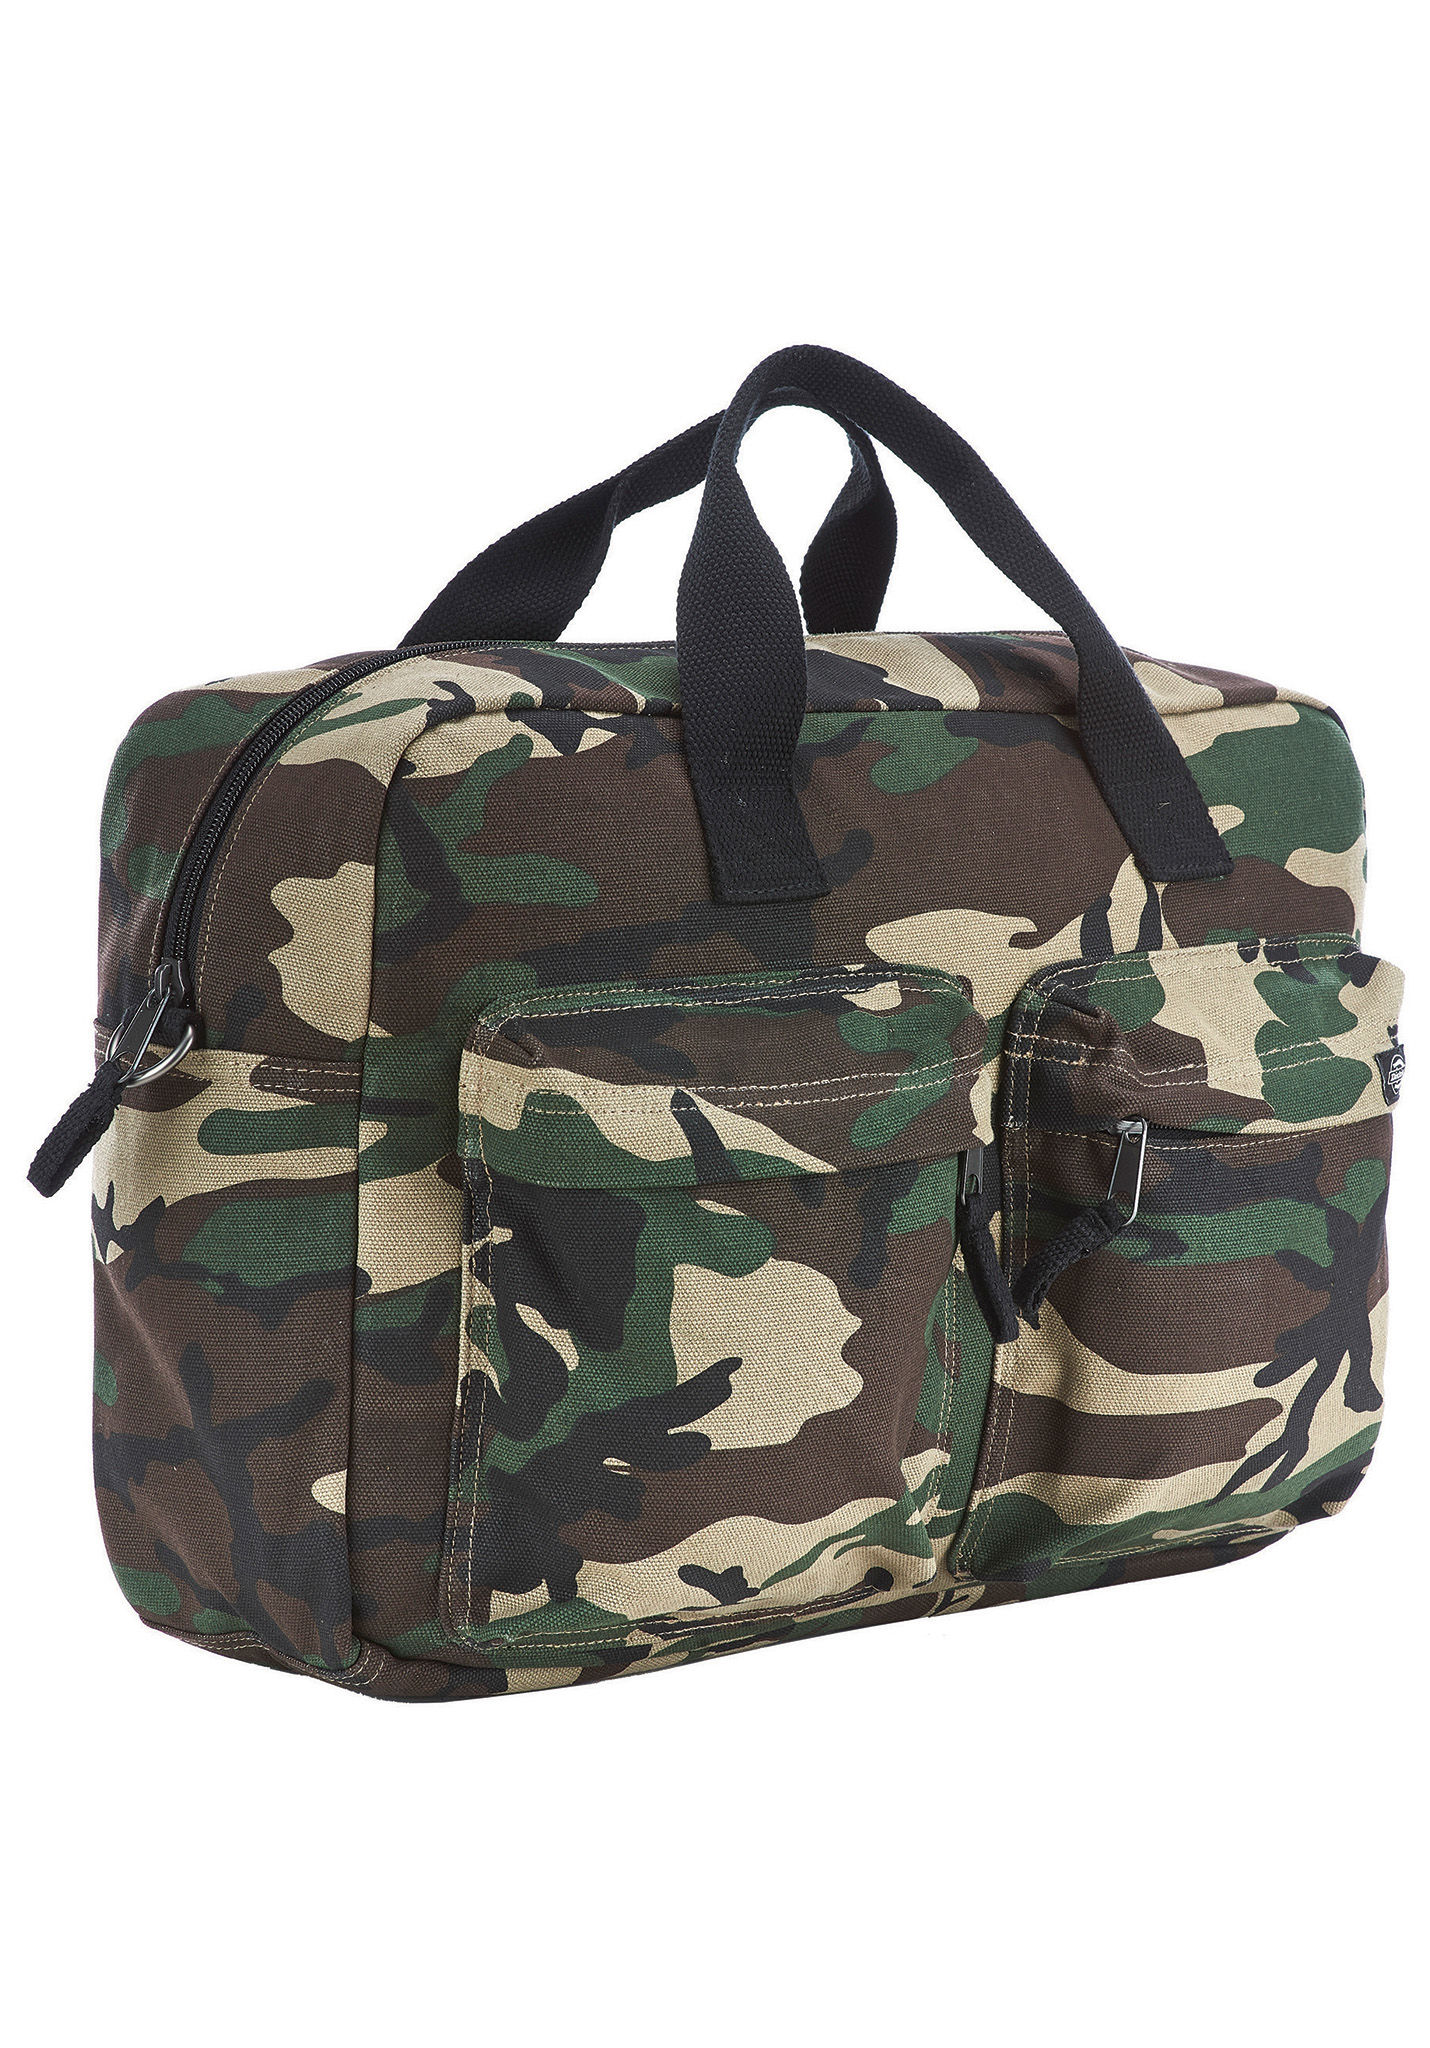 576e22f6440 Dickies valley springs messenger bag camo planet sports jpg 1430x2048 Dickies  camo messenger bag